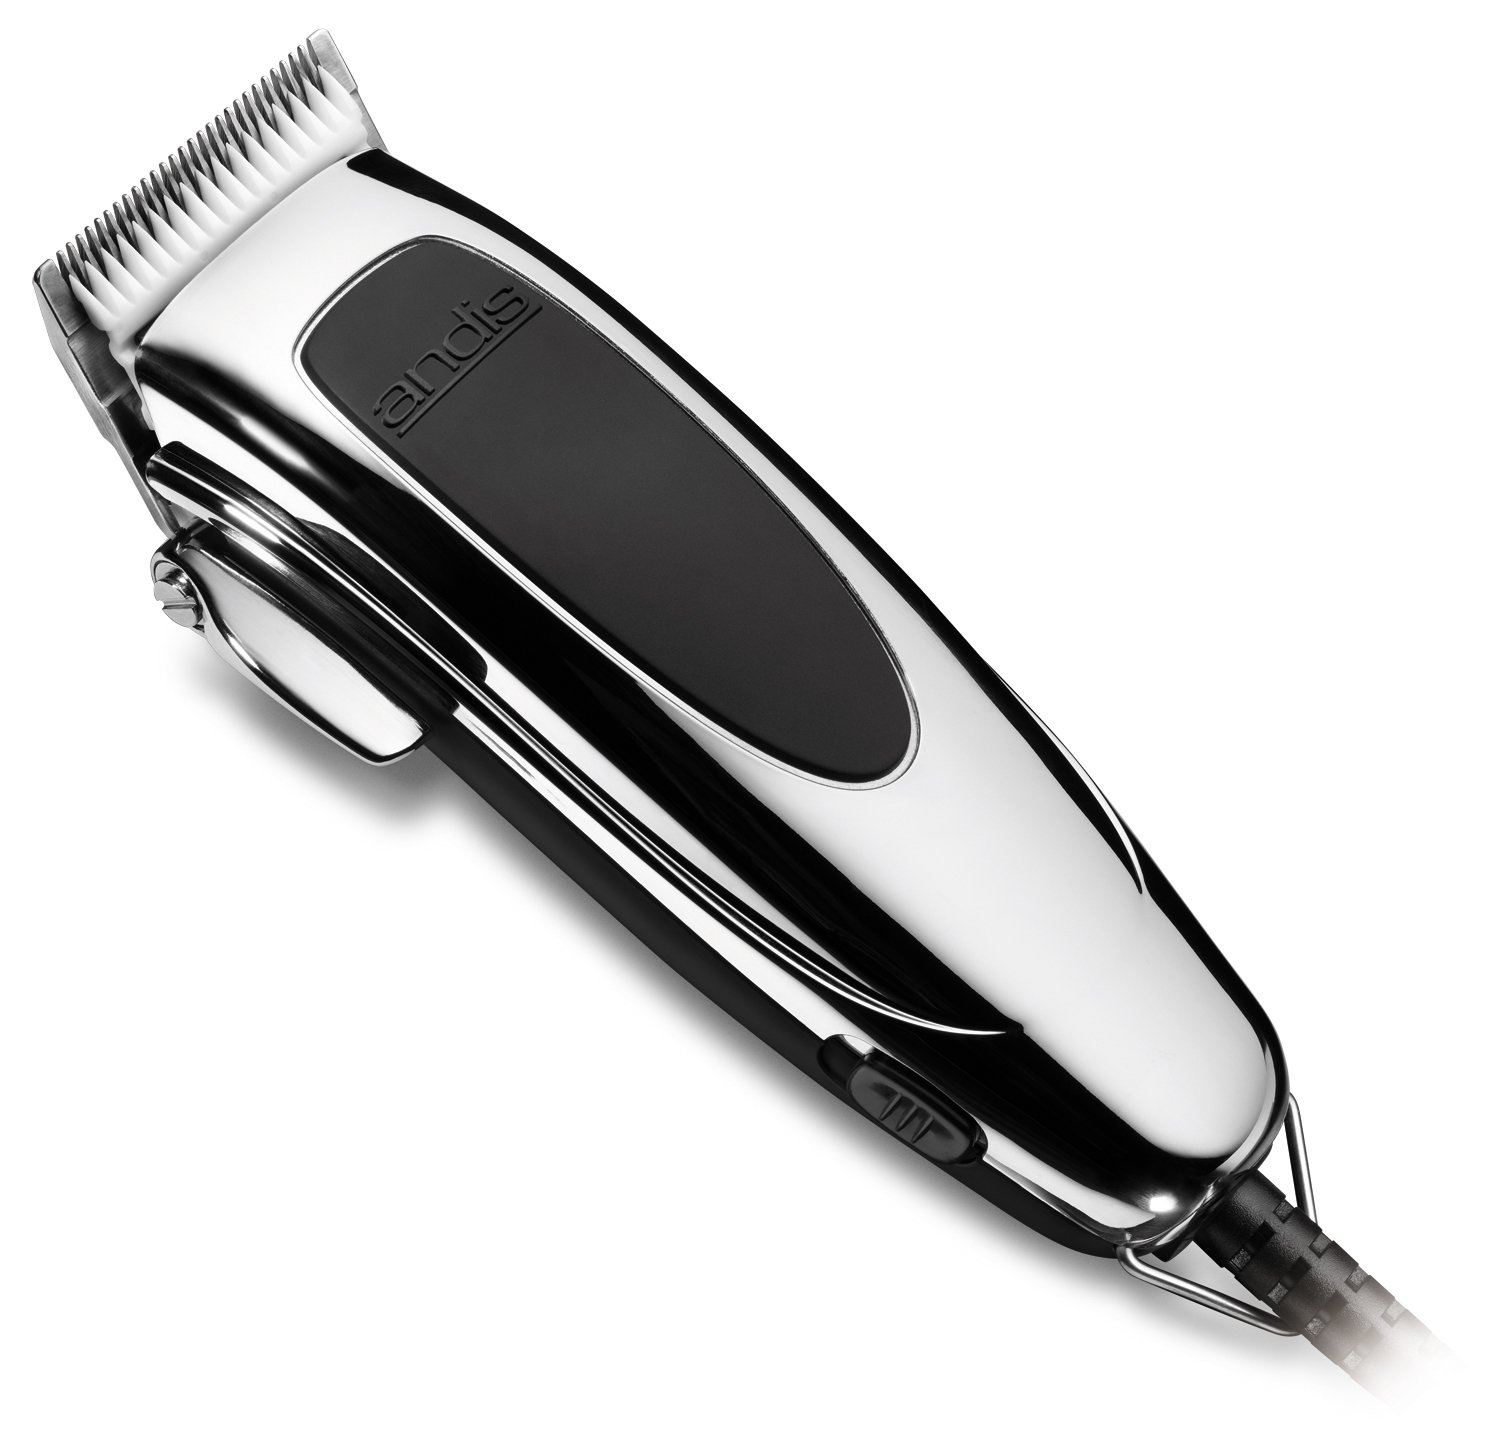 Andis SpeedMaster II Hair Clipper with Adjustable Blade, Silver, Model PM4 (24145)